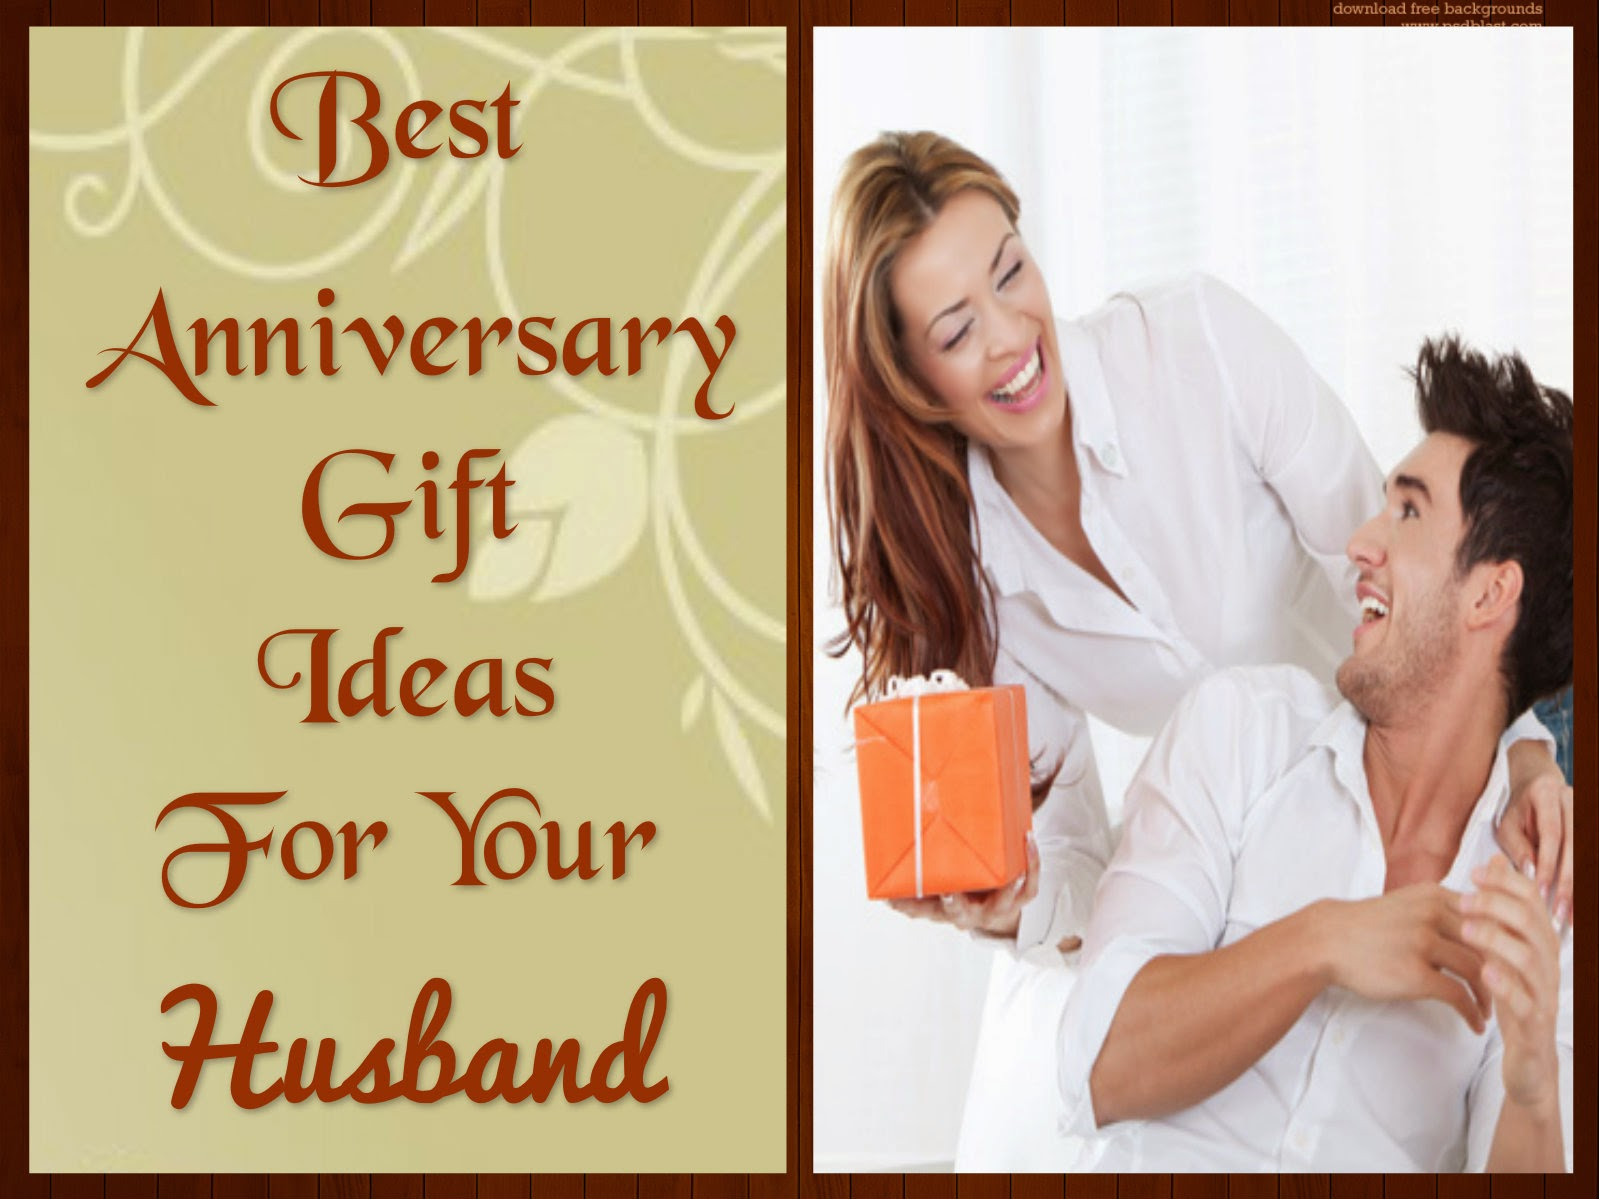 Gift To Husband On Wedding Anniversary: Wedding Anniversary Gifts: Best Anniversary Gift Ideas For